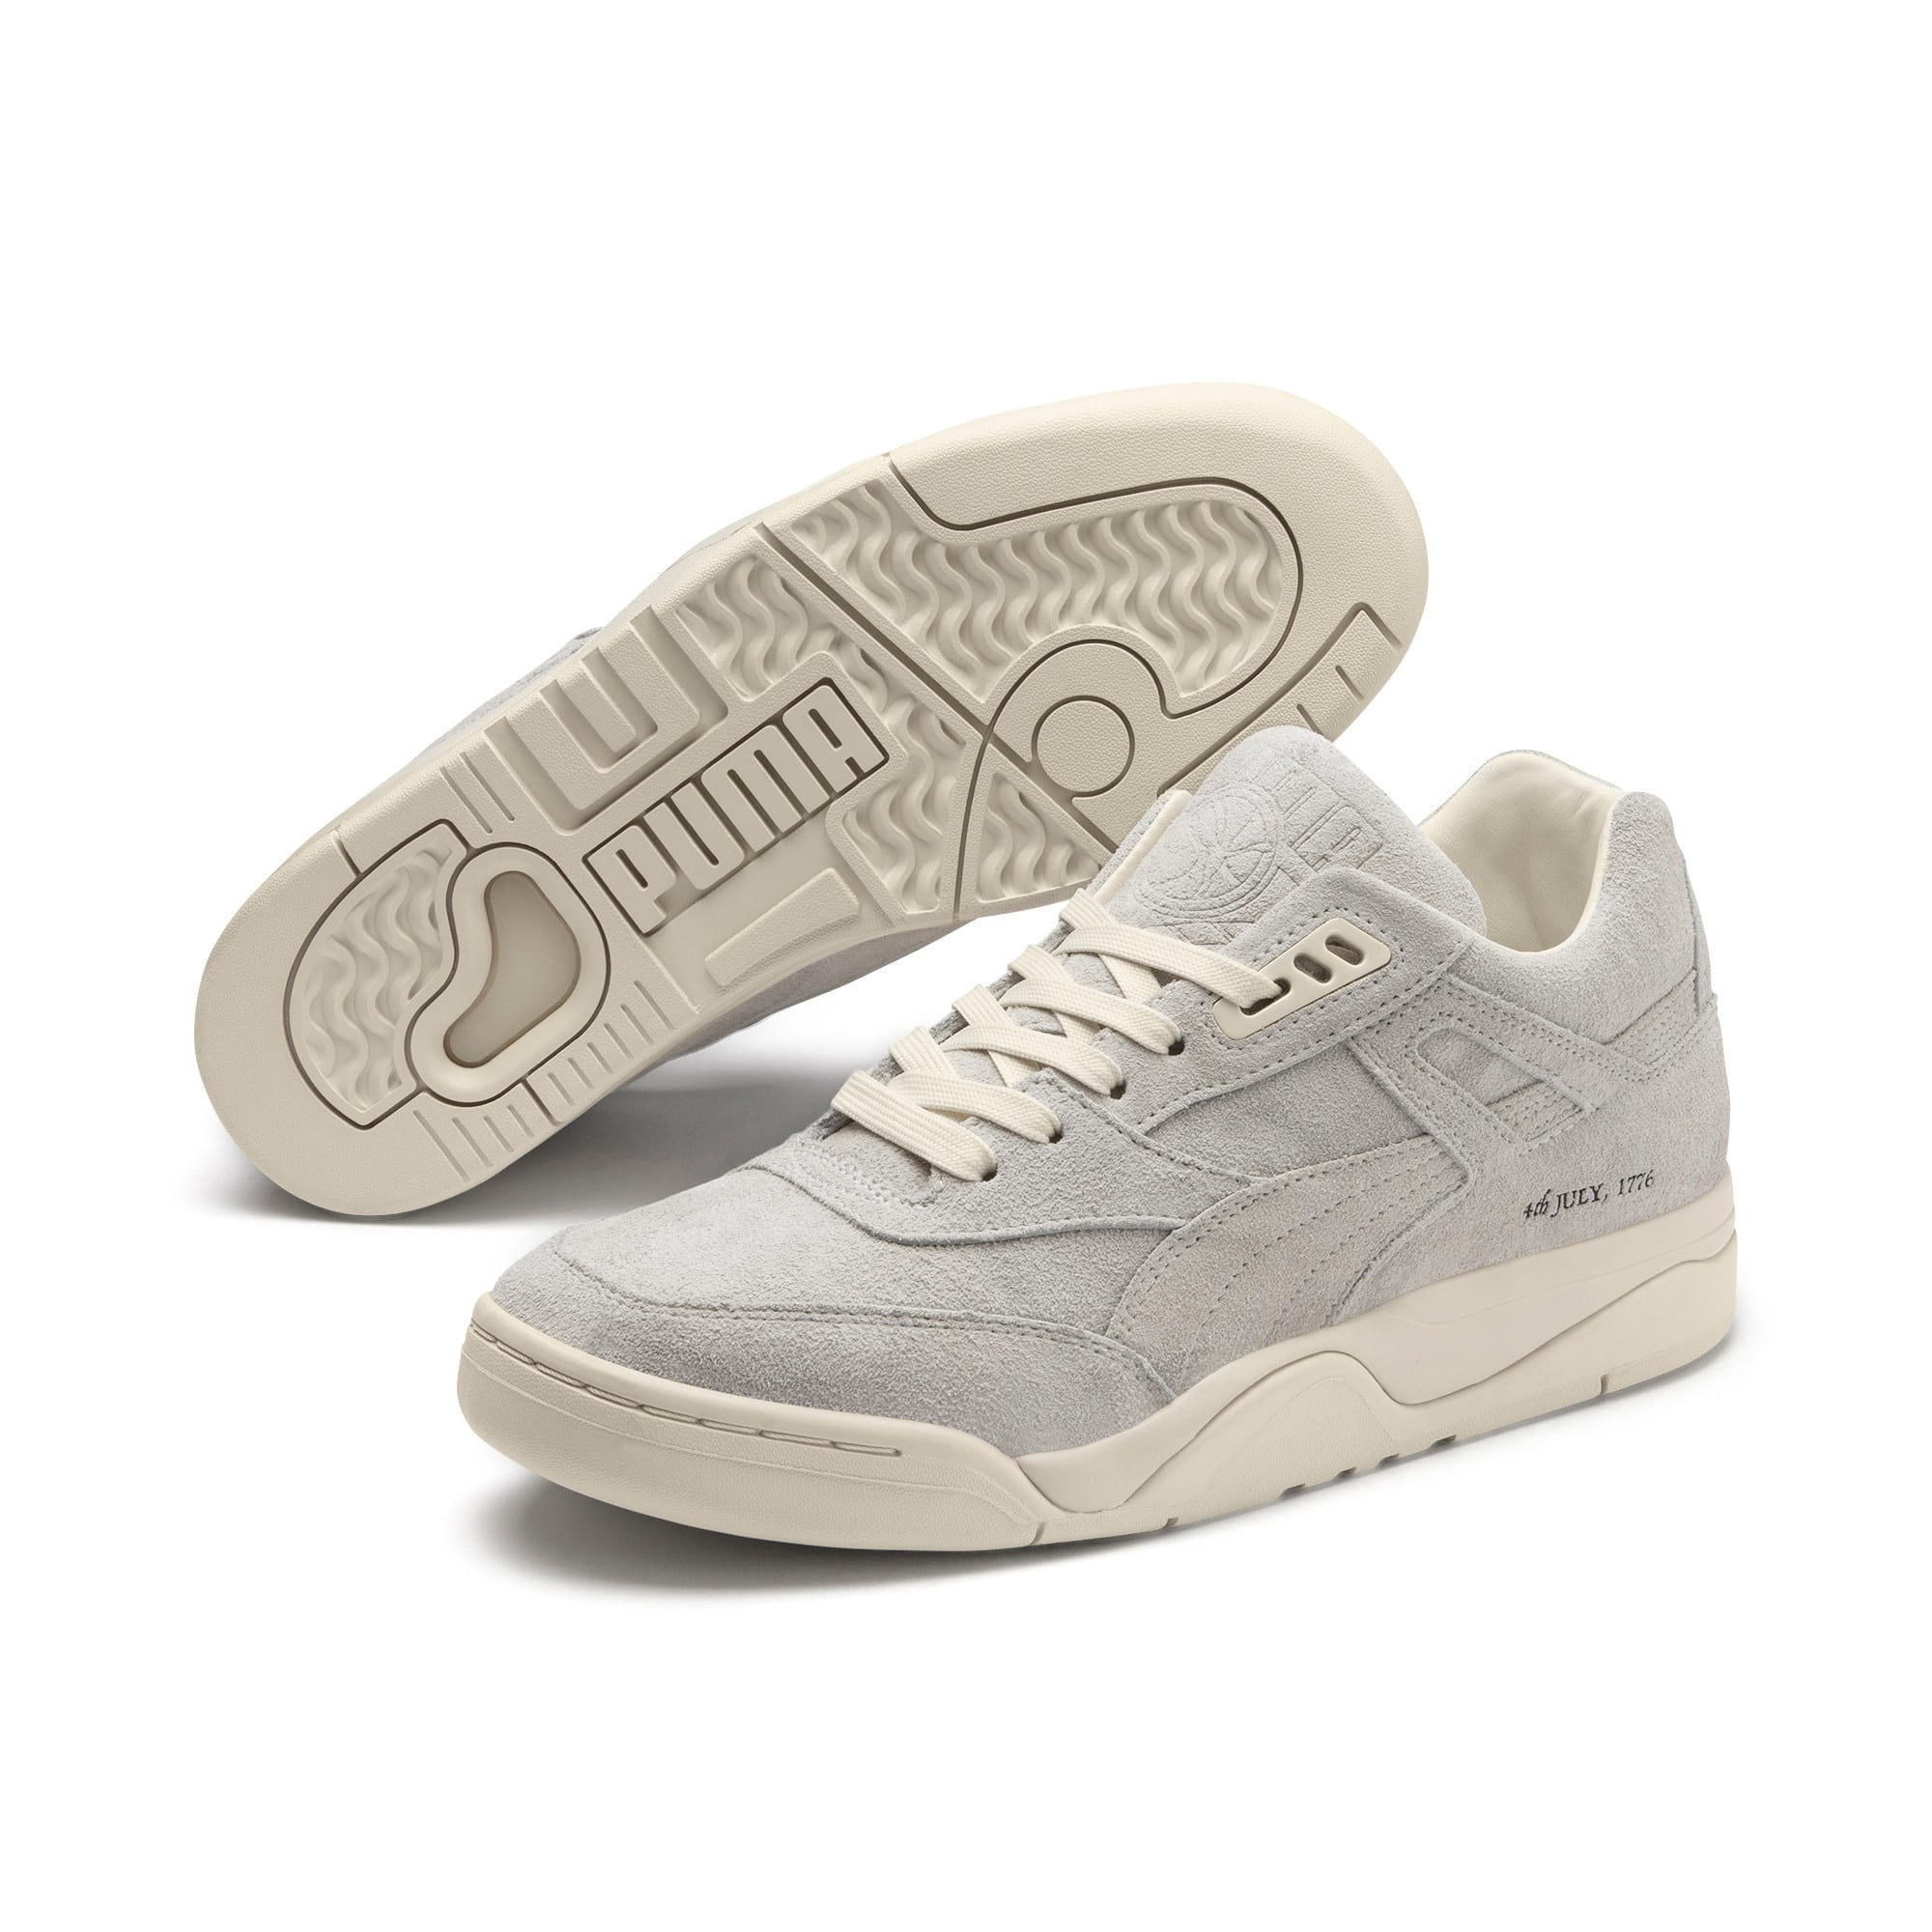 Thumbnail 4 of Palace Guard 4th of July Trainers, Whisper White-Puma Black, medium-IND